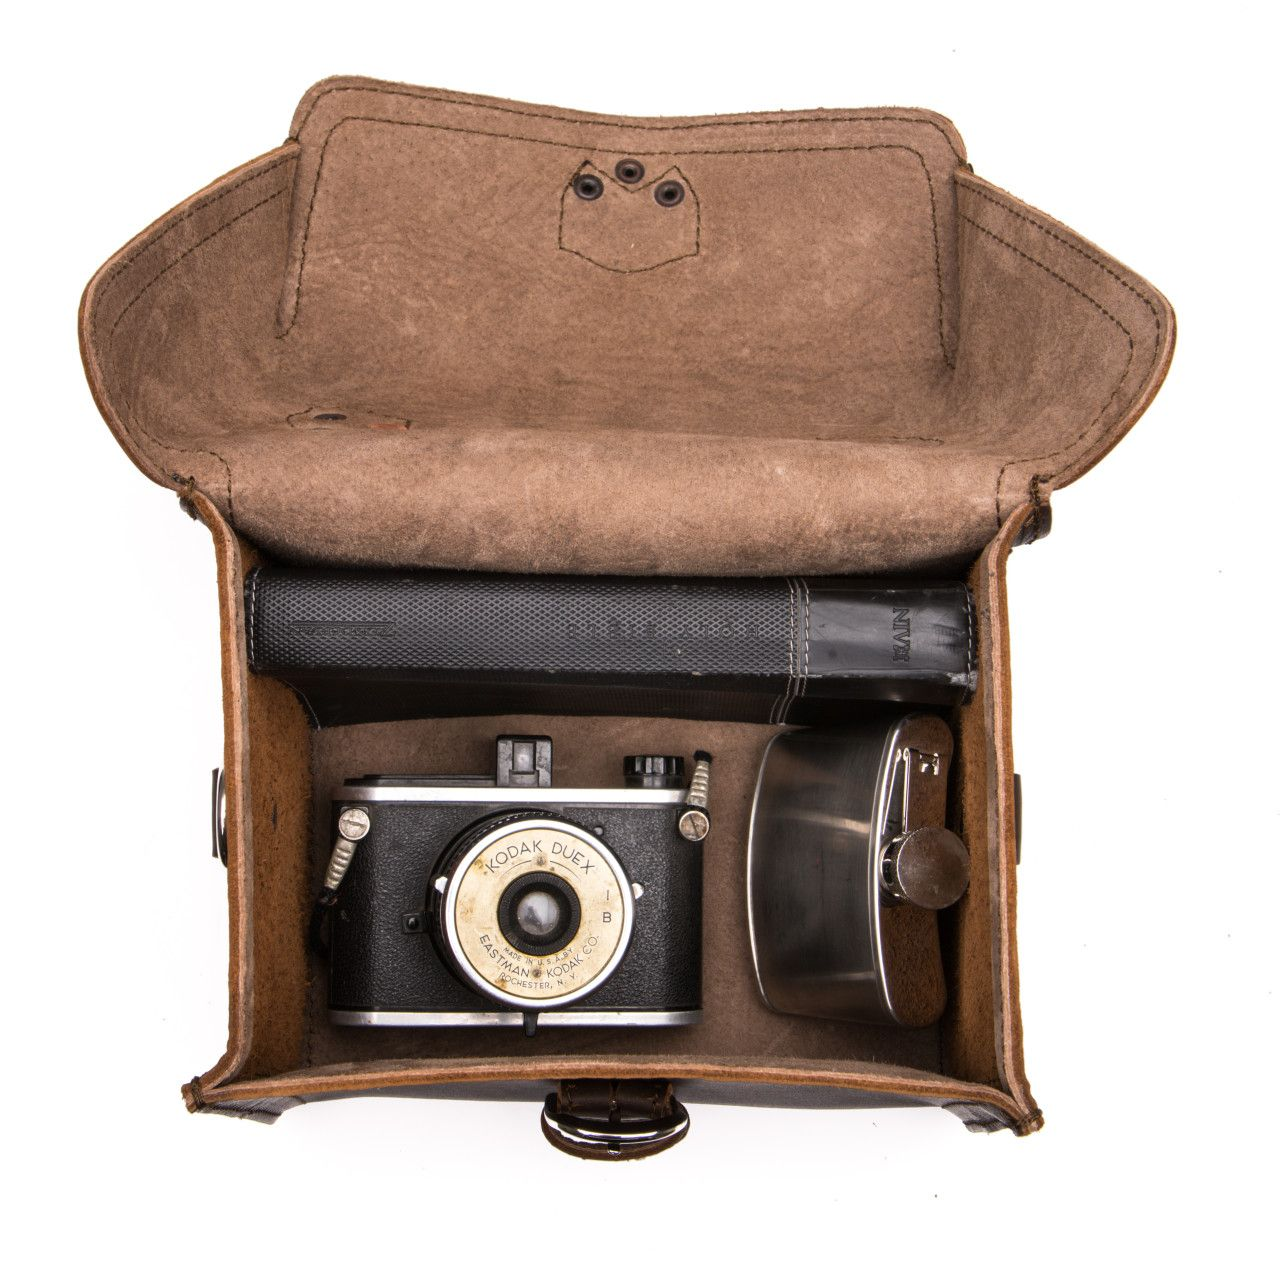 For your most valuable souvenirs suitcase will be leather gadget bag medium in dark coffee brown leather